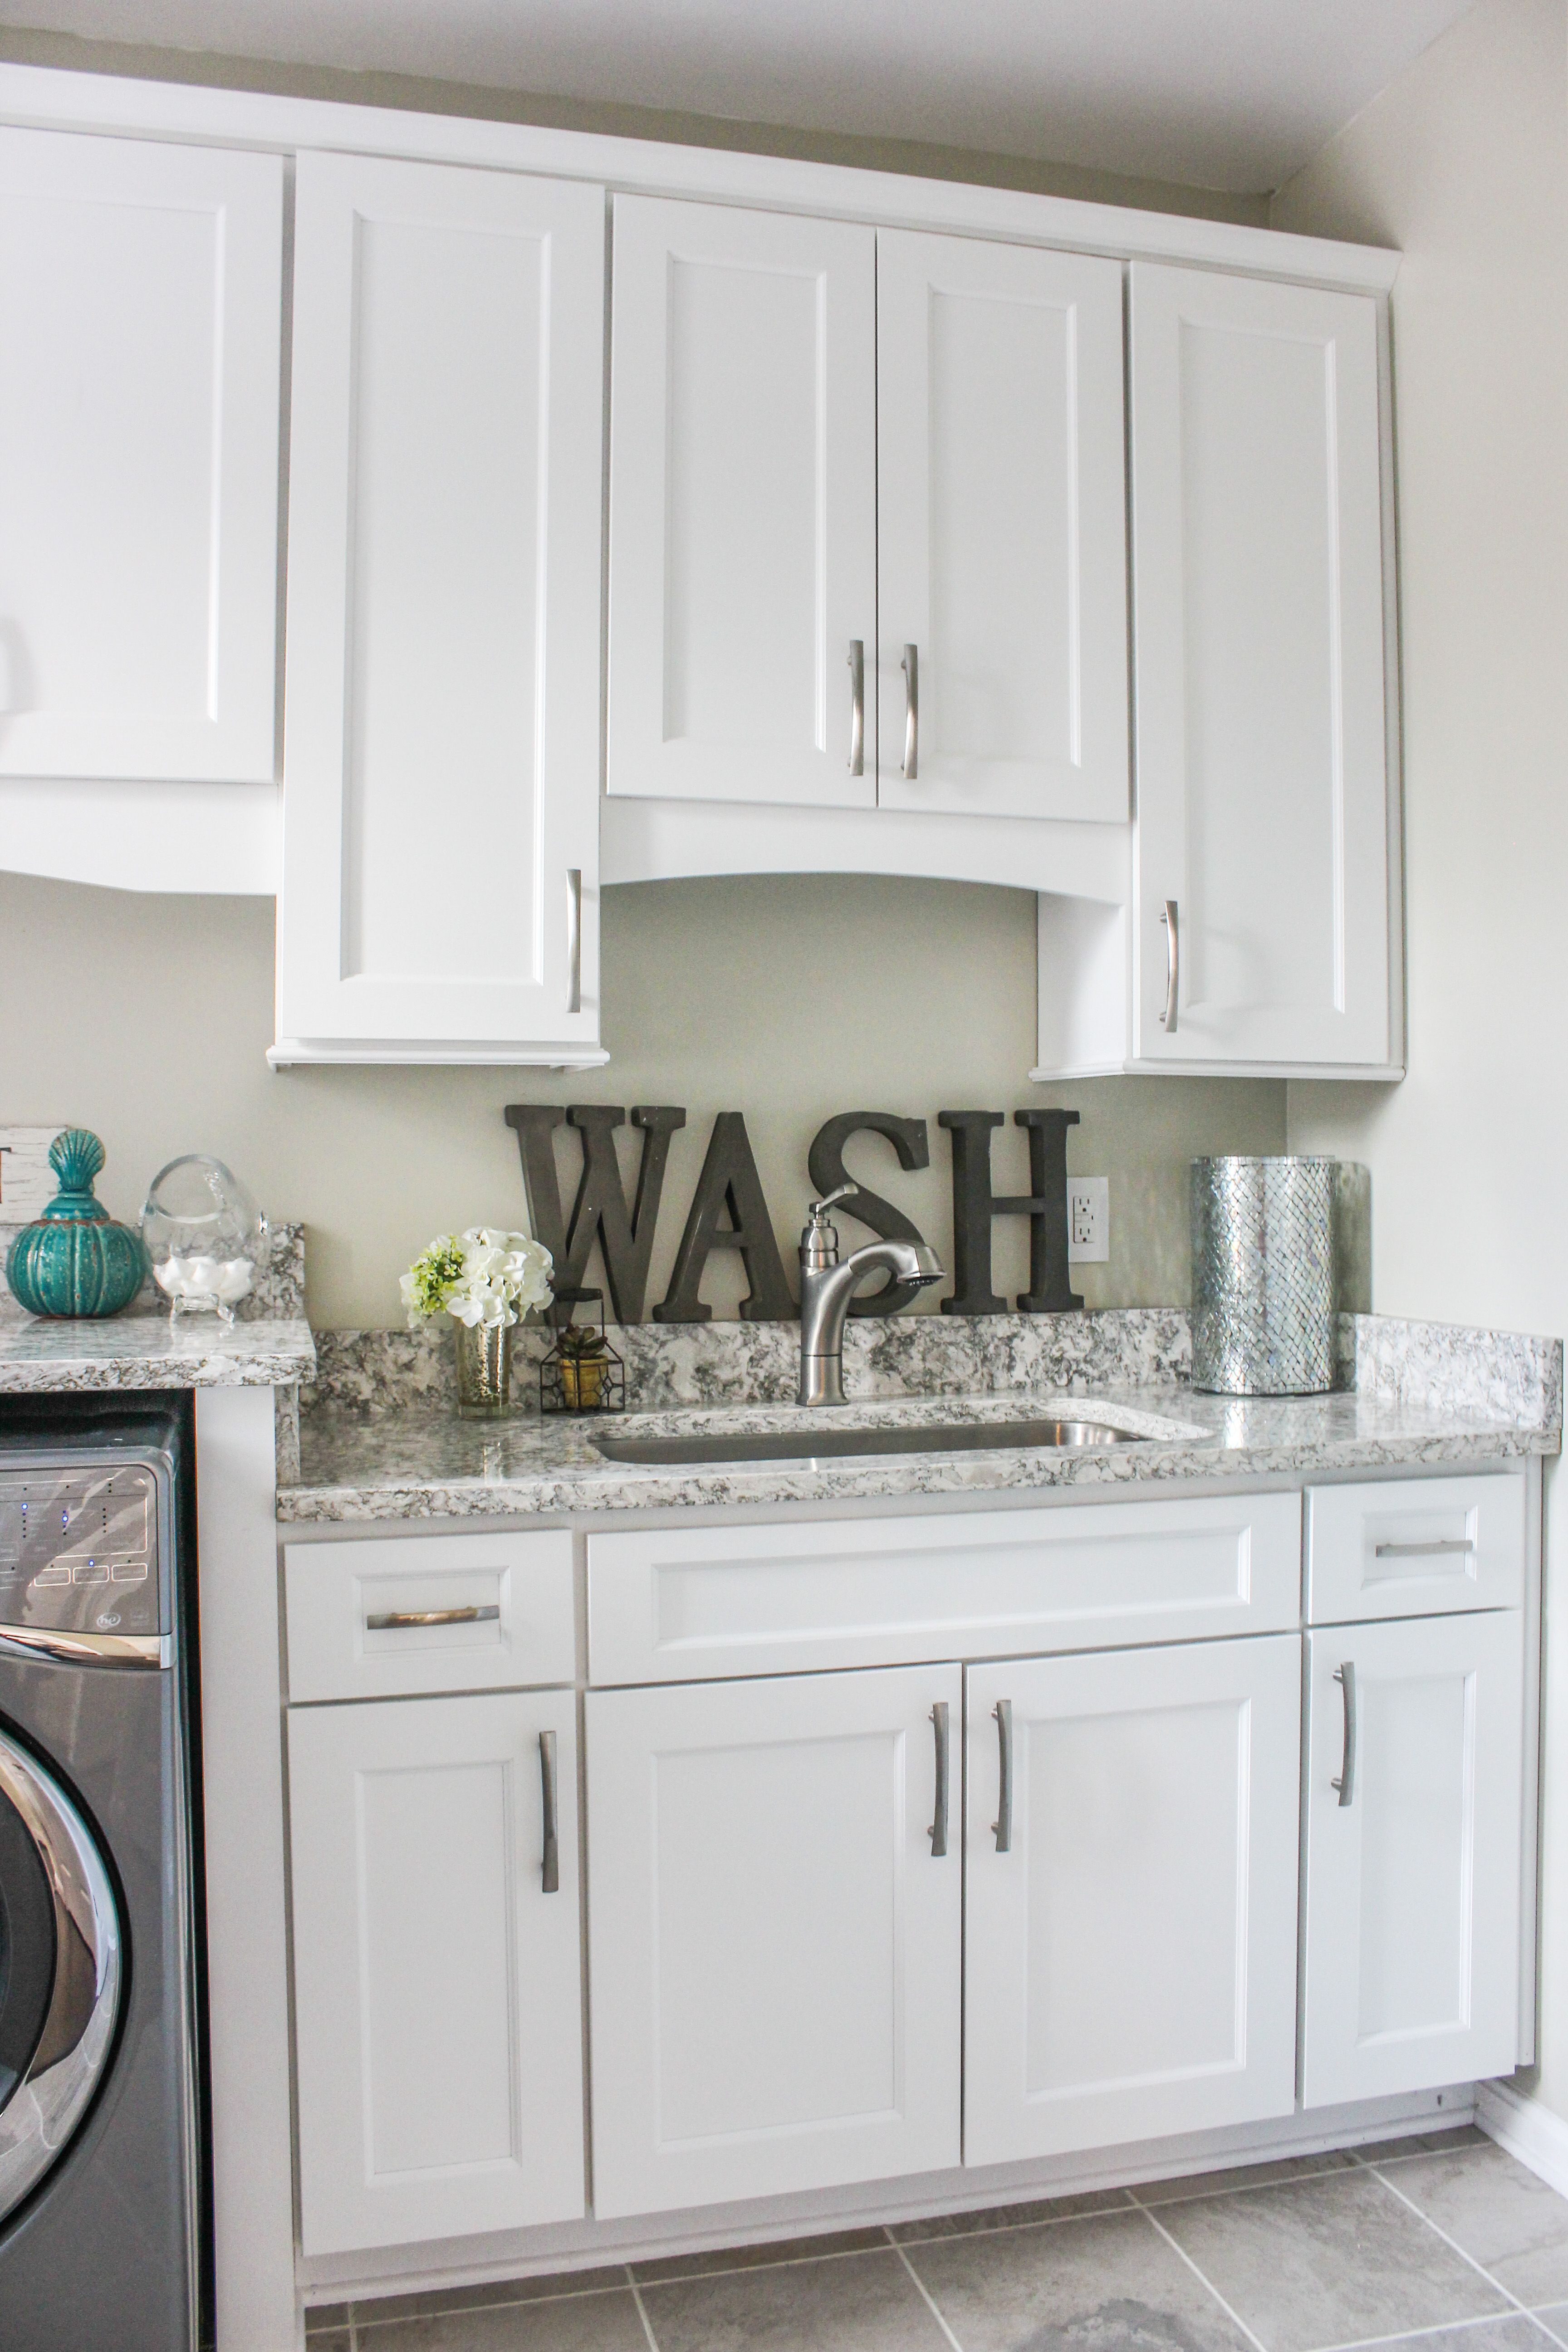 Wolf Classic Cabinets York In White Kitchen Cabinets Prices Hickory Kitchen Cabinets Antique White Kitchen Cabinets